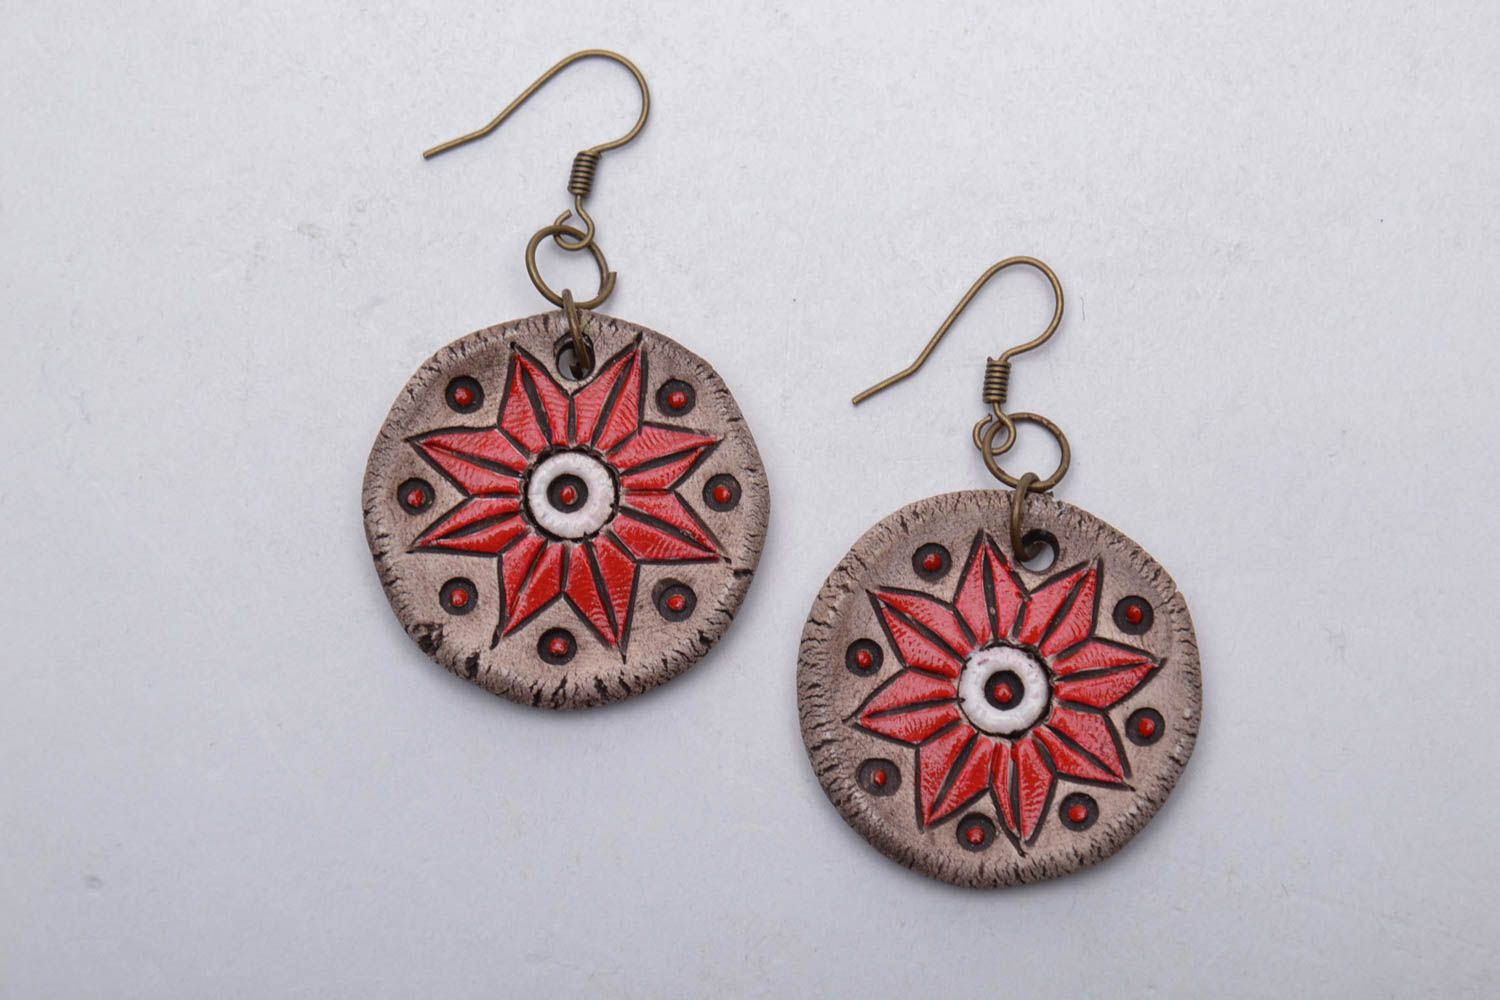 Ceramic earrings with charms photo 3